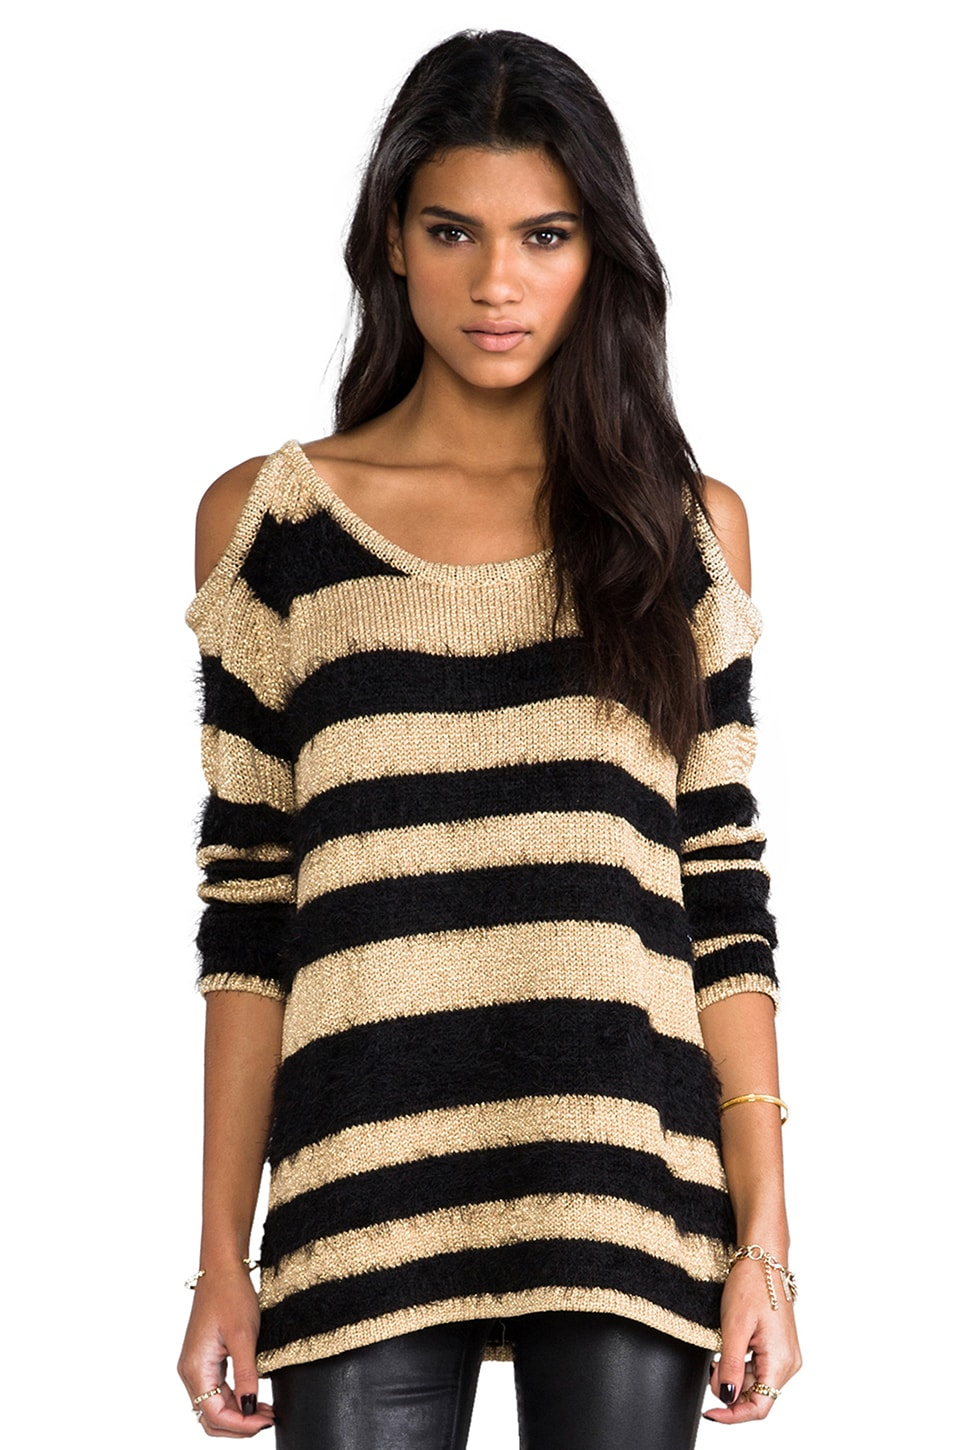 MINKPINK Golly Gosh Knitted Sweater in Black & Gold